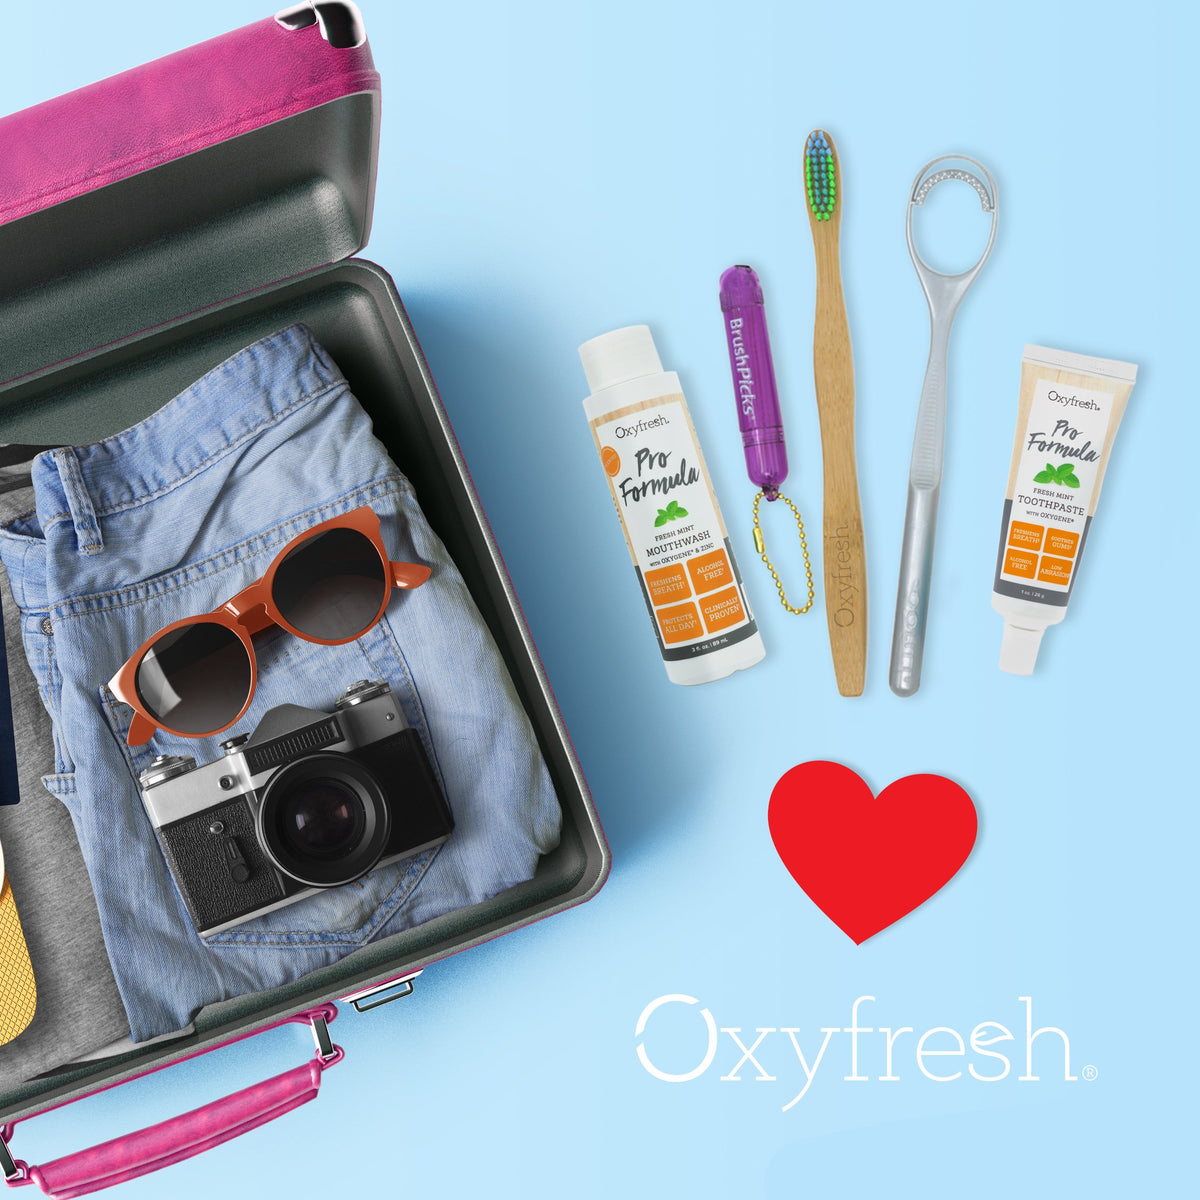 Take fresh breath and gentle dental care on every trip with our Pro Formula Zinc Toothpaste Travel Kit